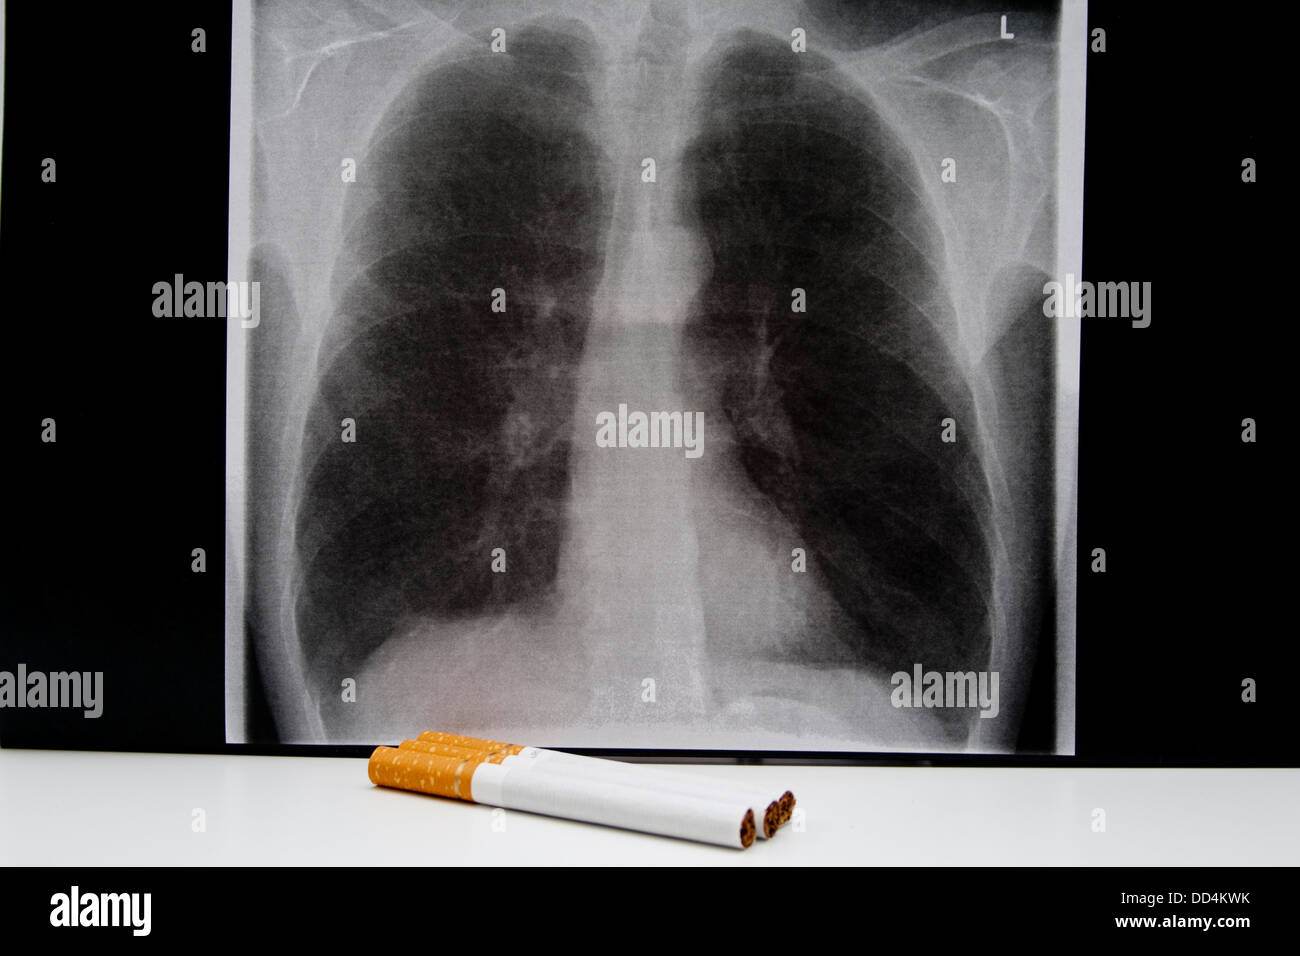 Lung picture with cigarettes - Stock Image